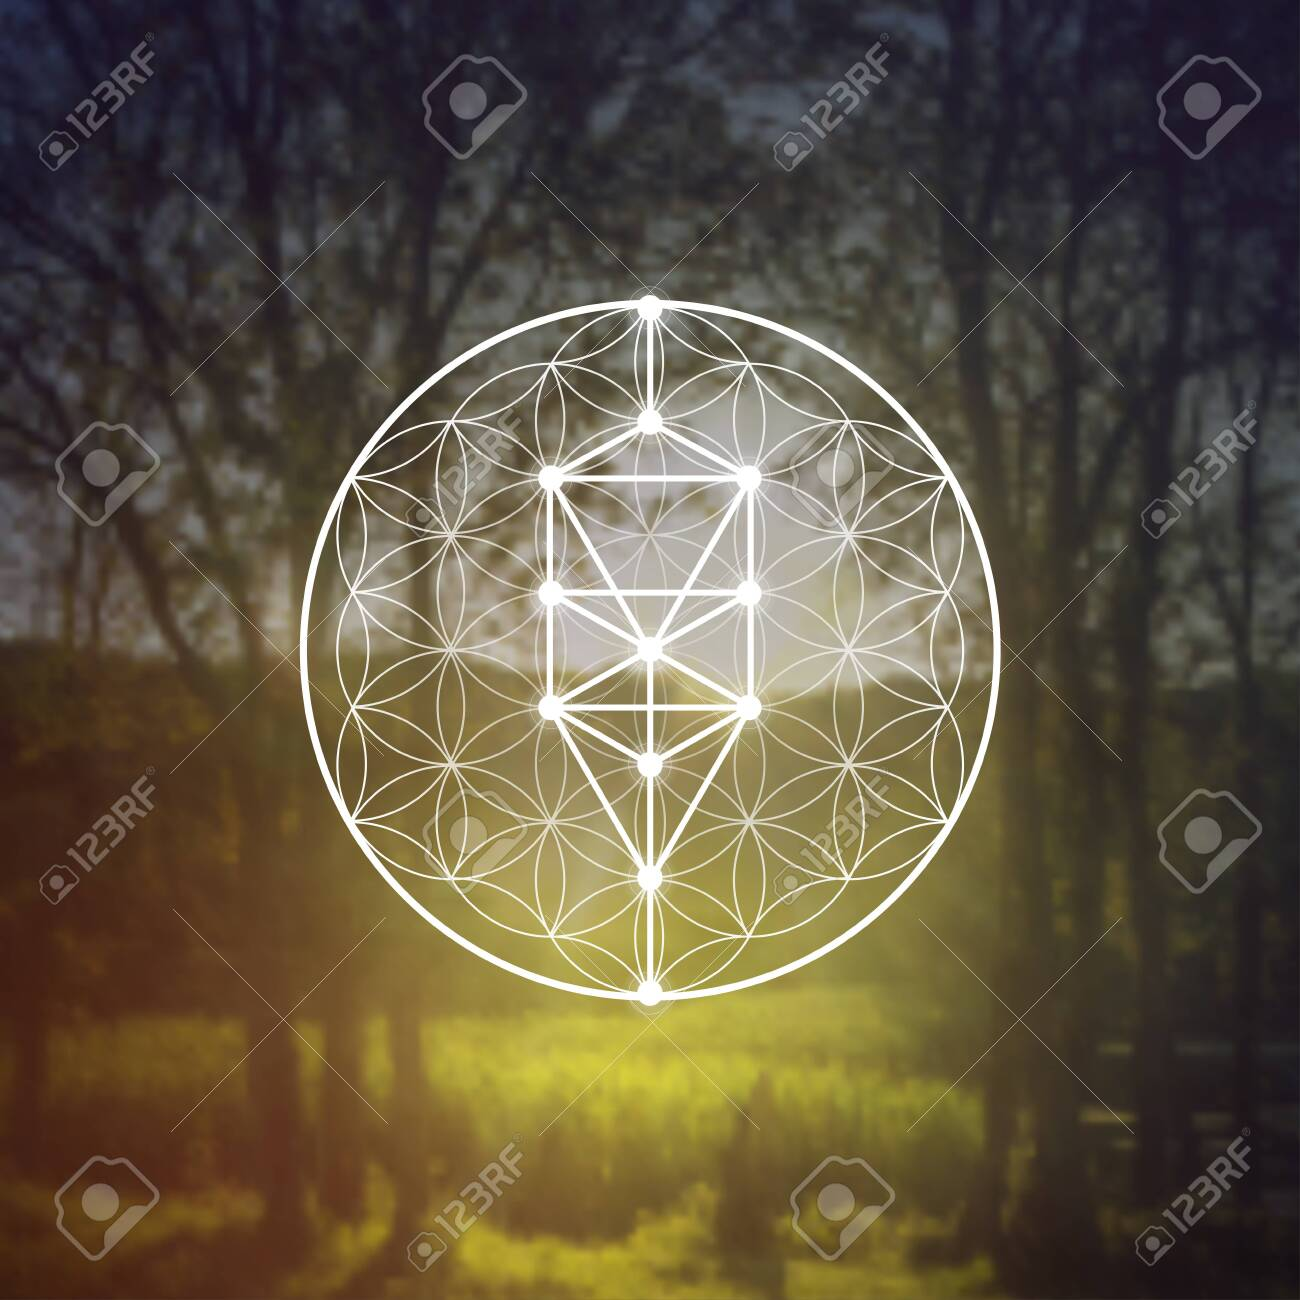 Flower of life sacred geometry illustration with intelocking circles and light dots in front of photographic background. Hipster tree of life sci fi art - 153118220